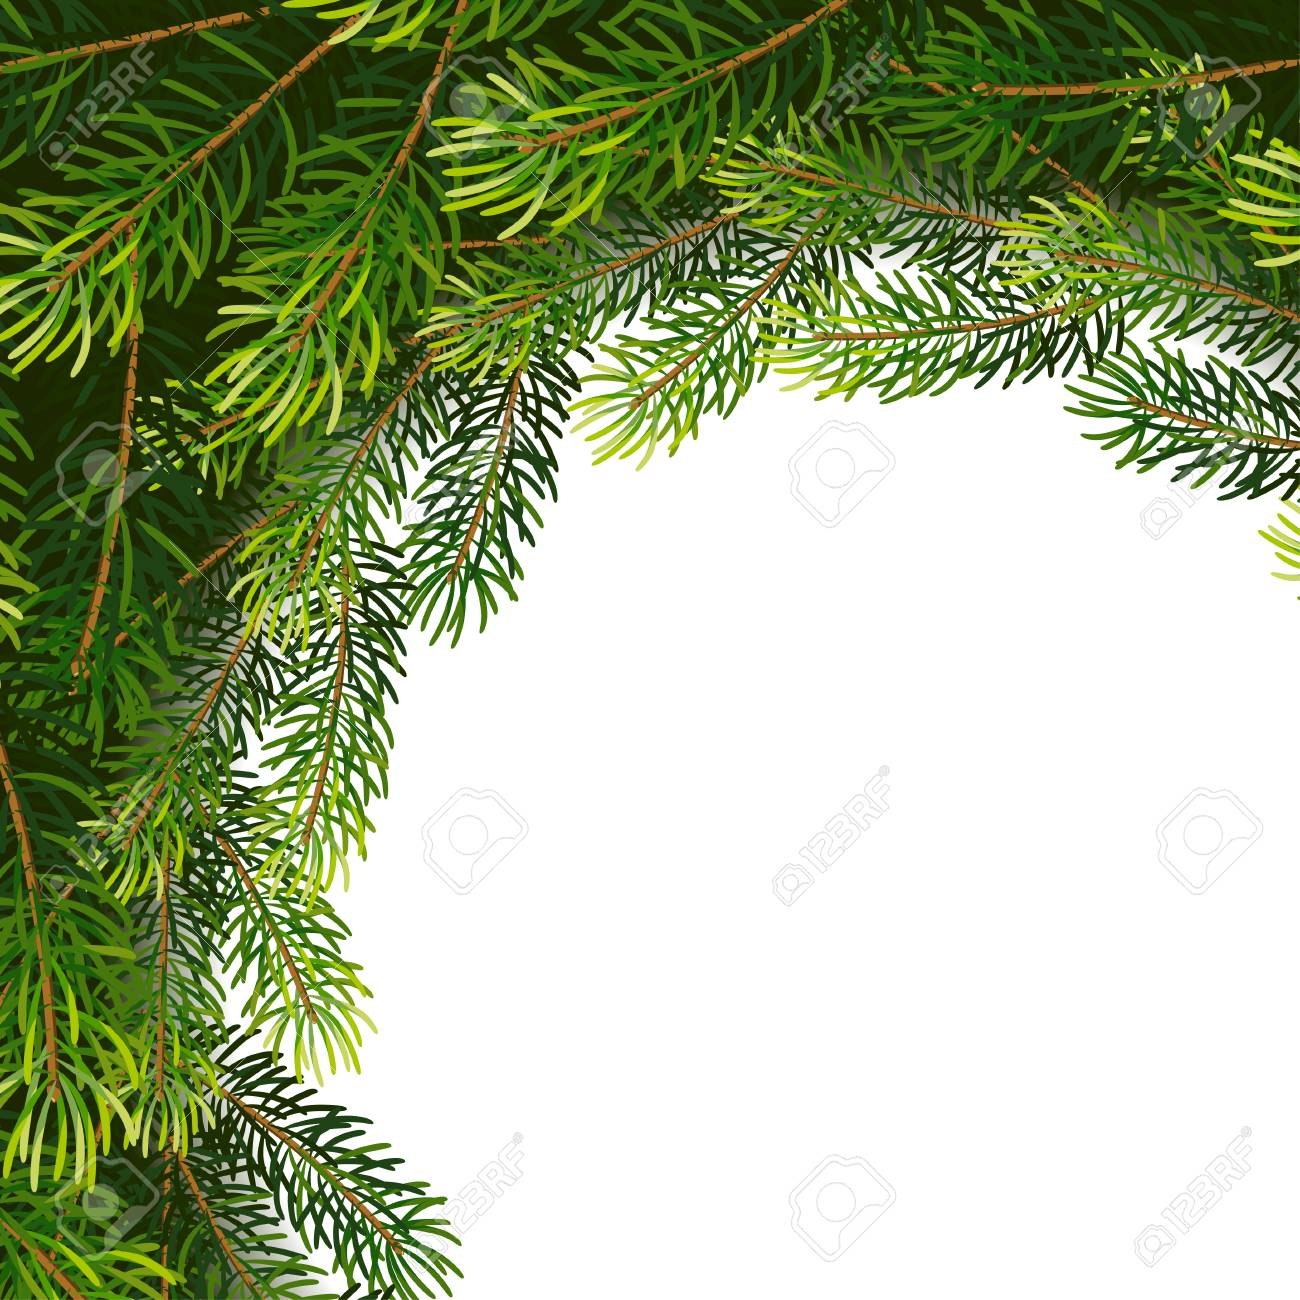 Christmas Wreath Frame From Fir Tree Branches Vector Illustration